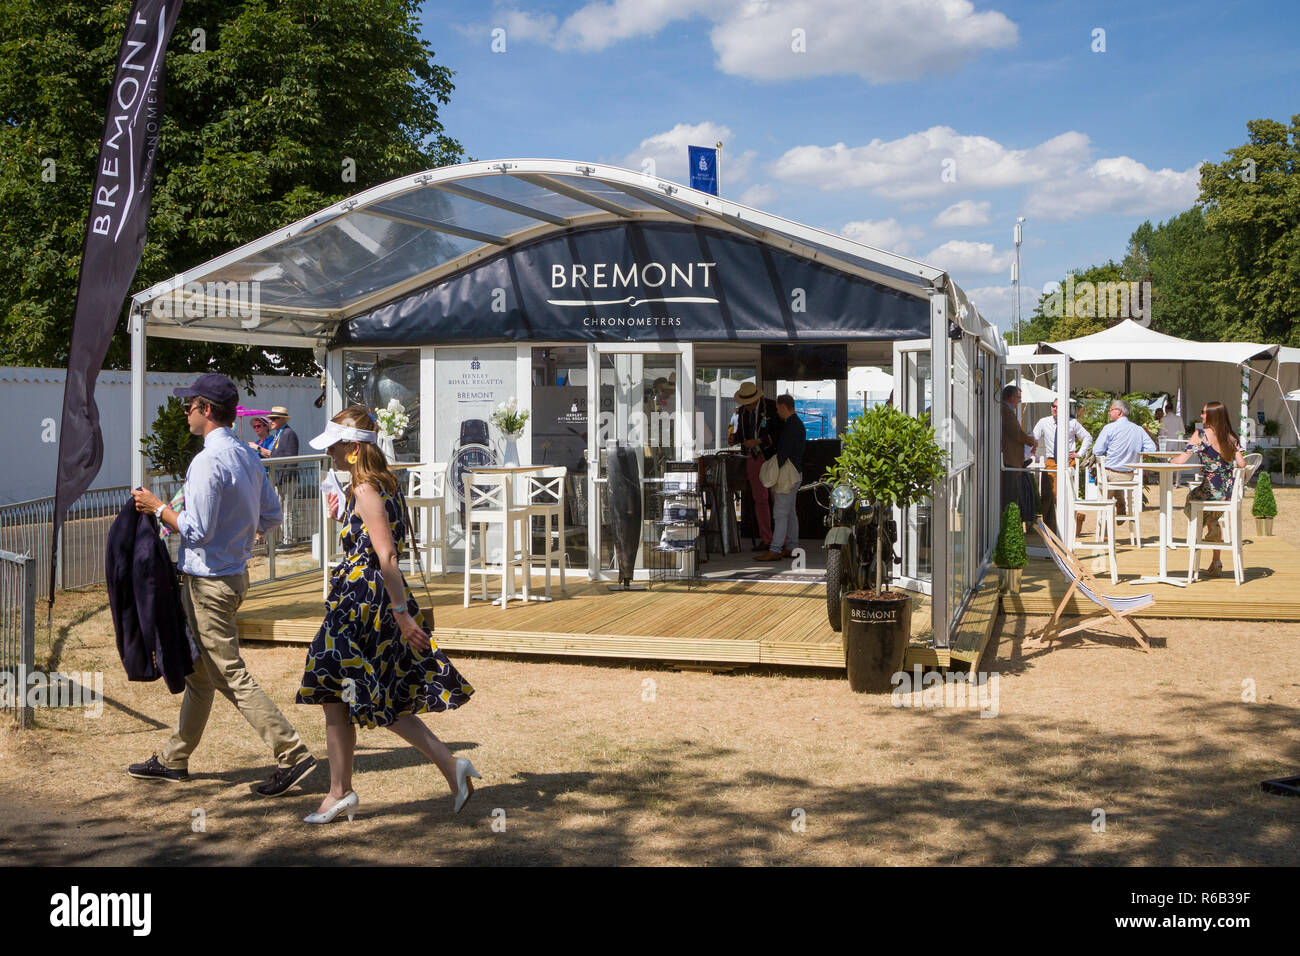 The Bremont Boutique for Bremont Chronometers at Henley Royal Regatta - Stock Image